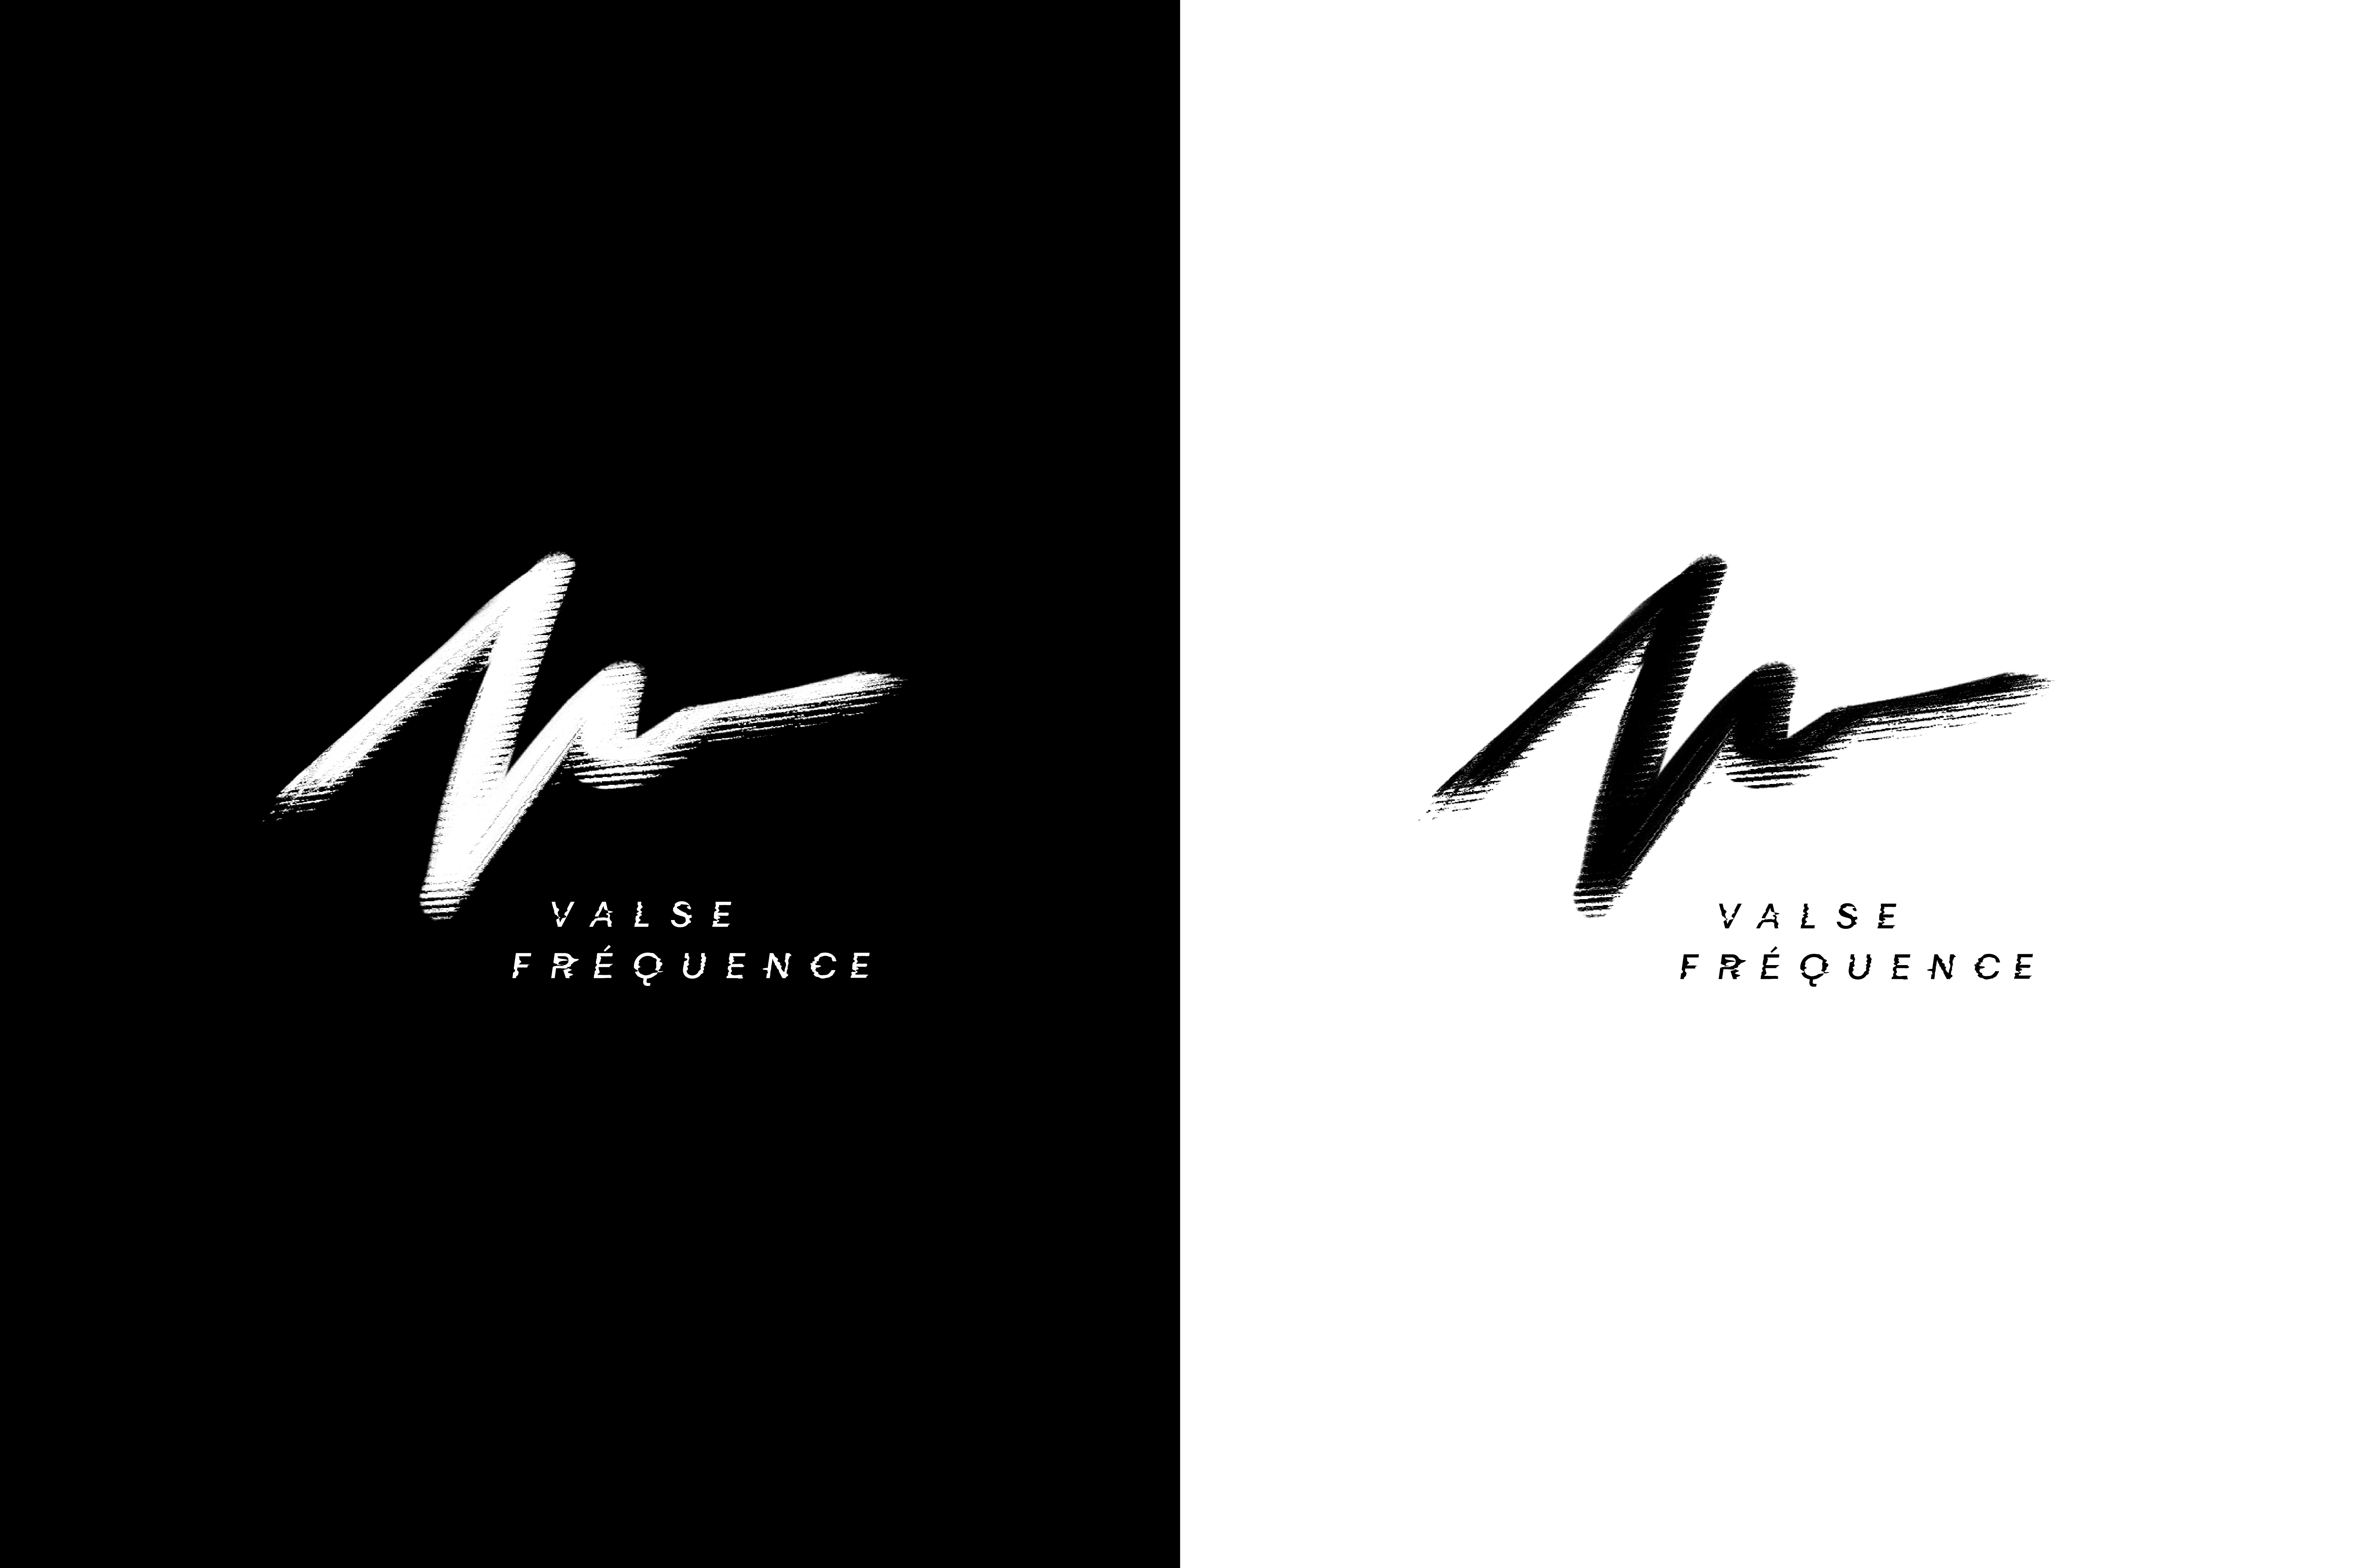 VALSE_FREQUENCE_LOGOS_FINAUX-10